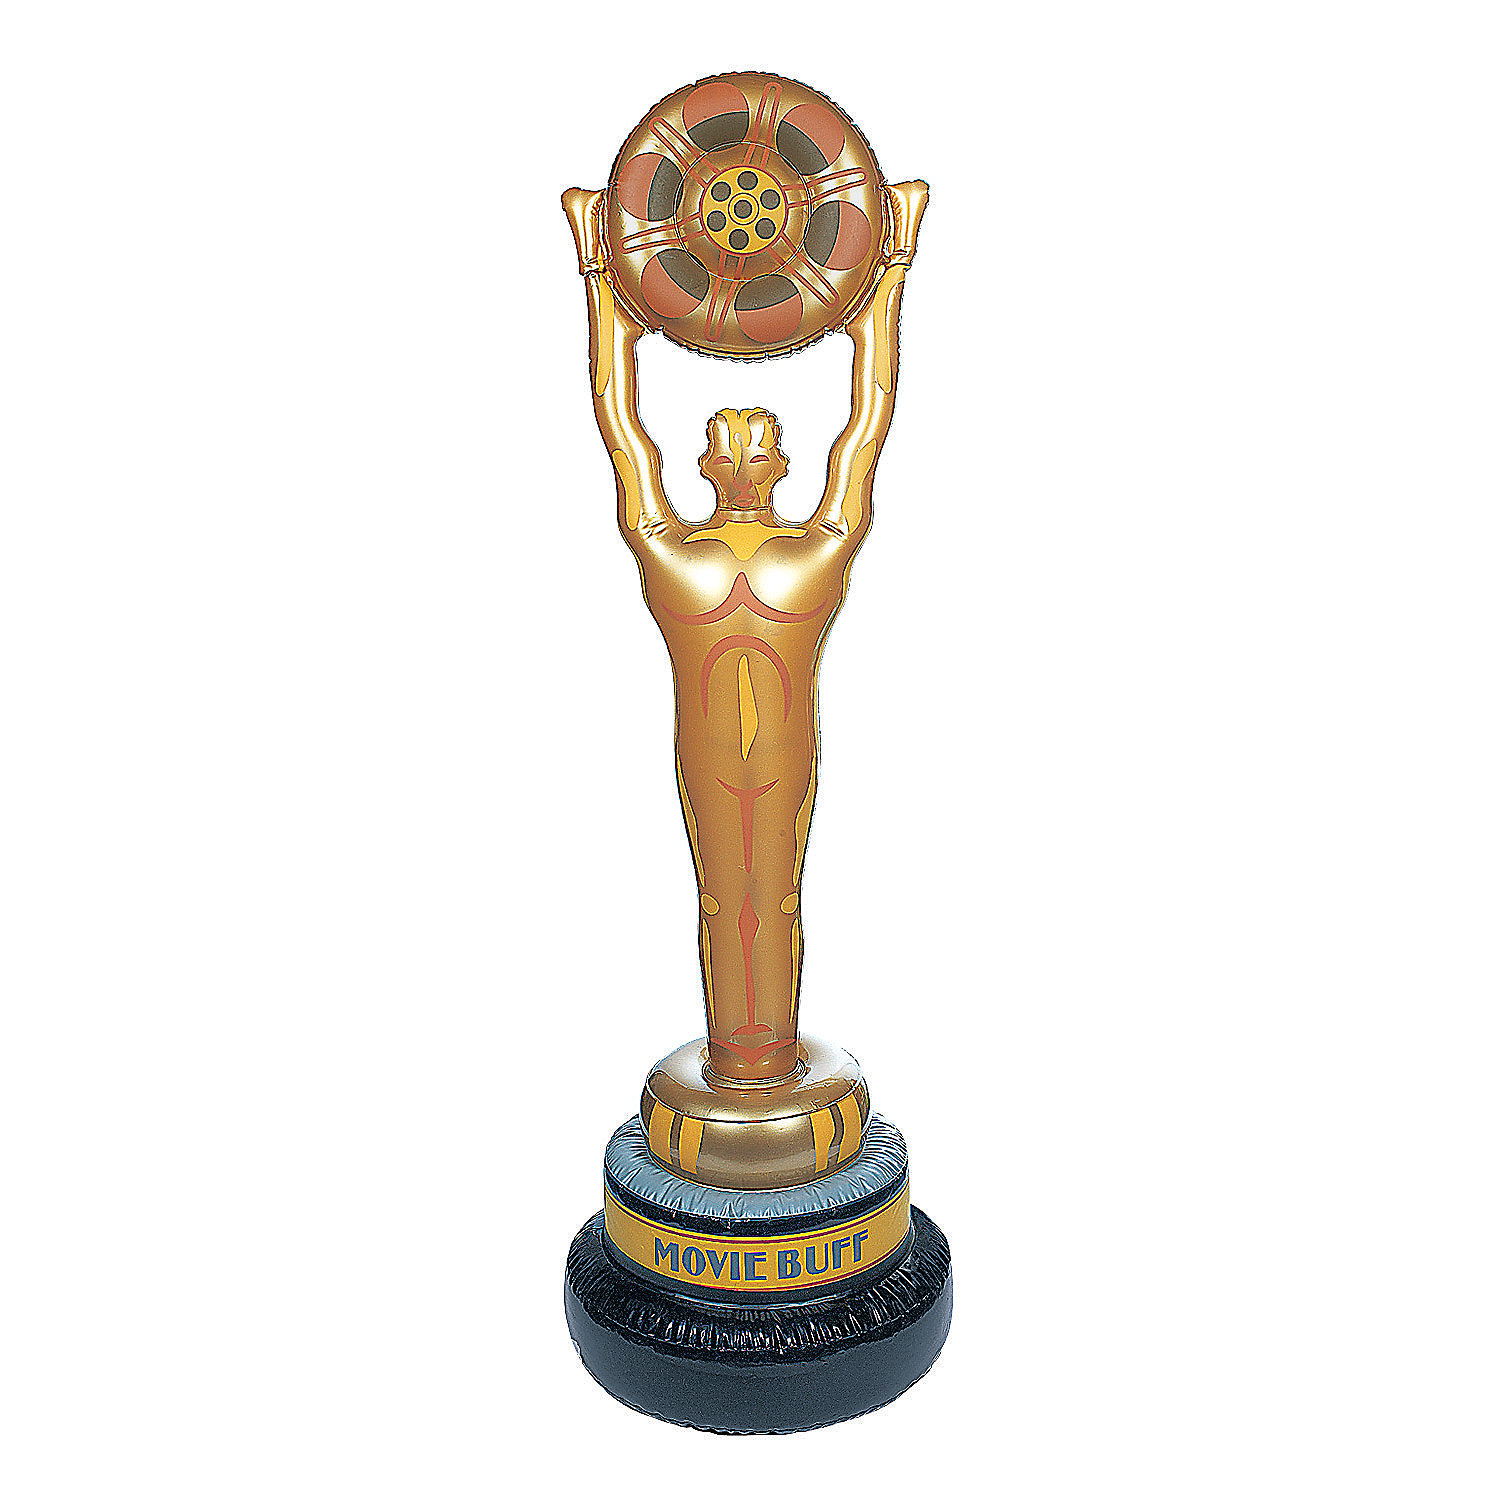 Toys For Awards : Inflatable oscar movie award giant party novelty toy